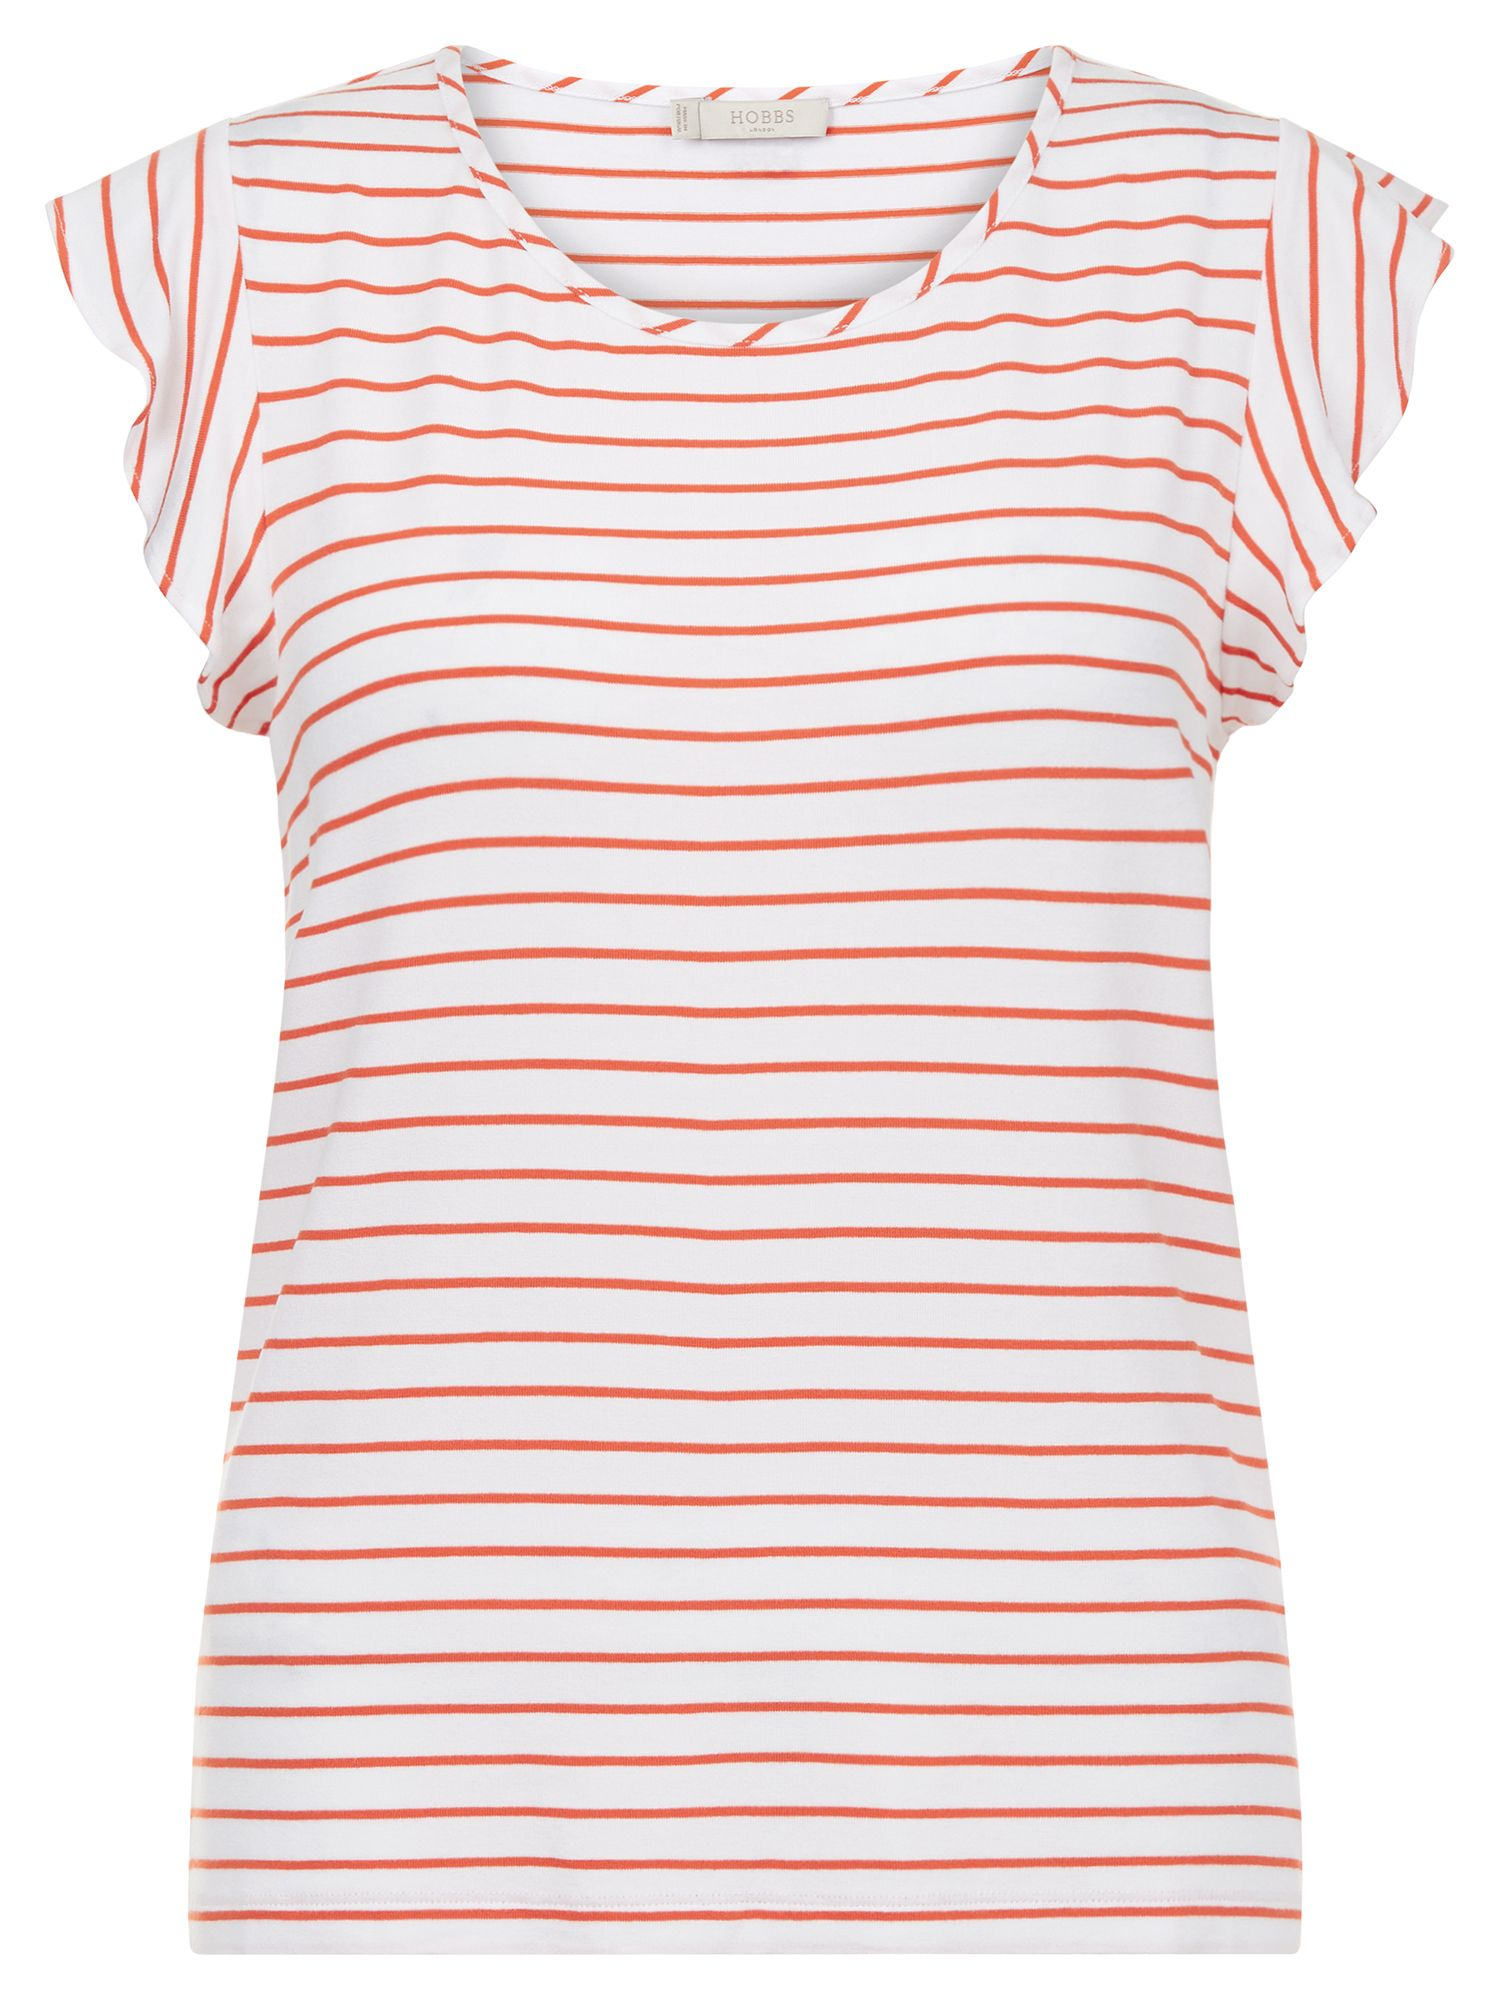 Hobbs Vanessa Tee, Multi-Coloured